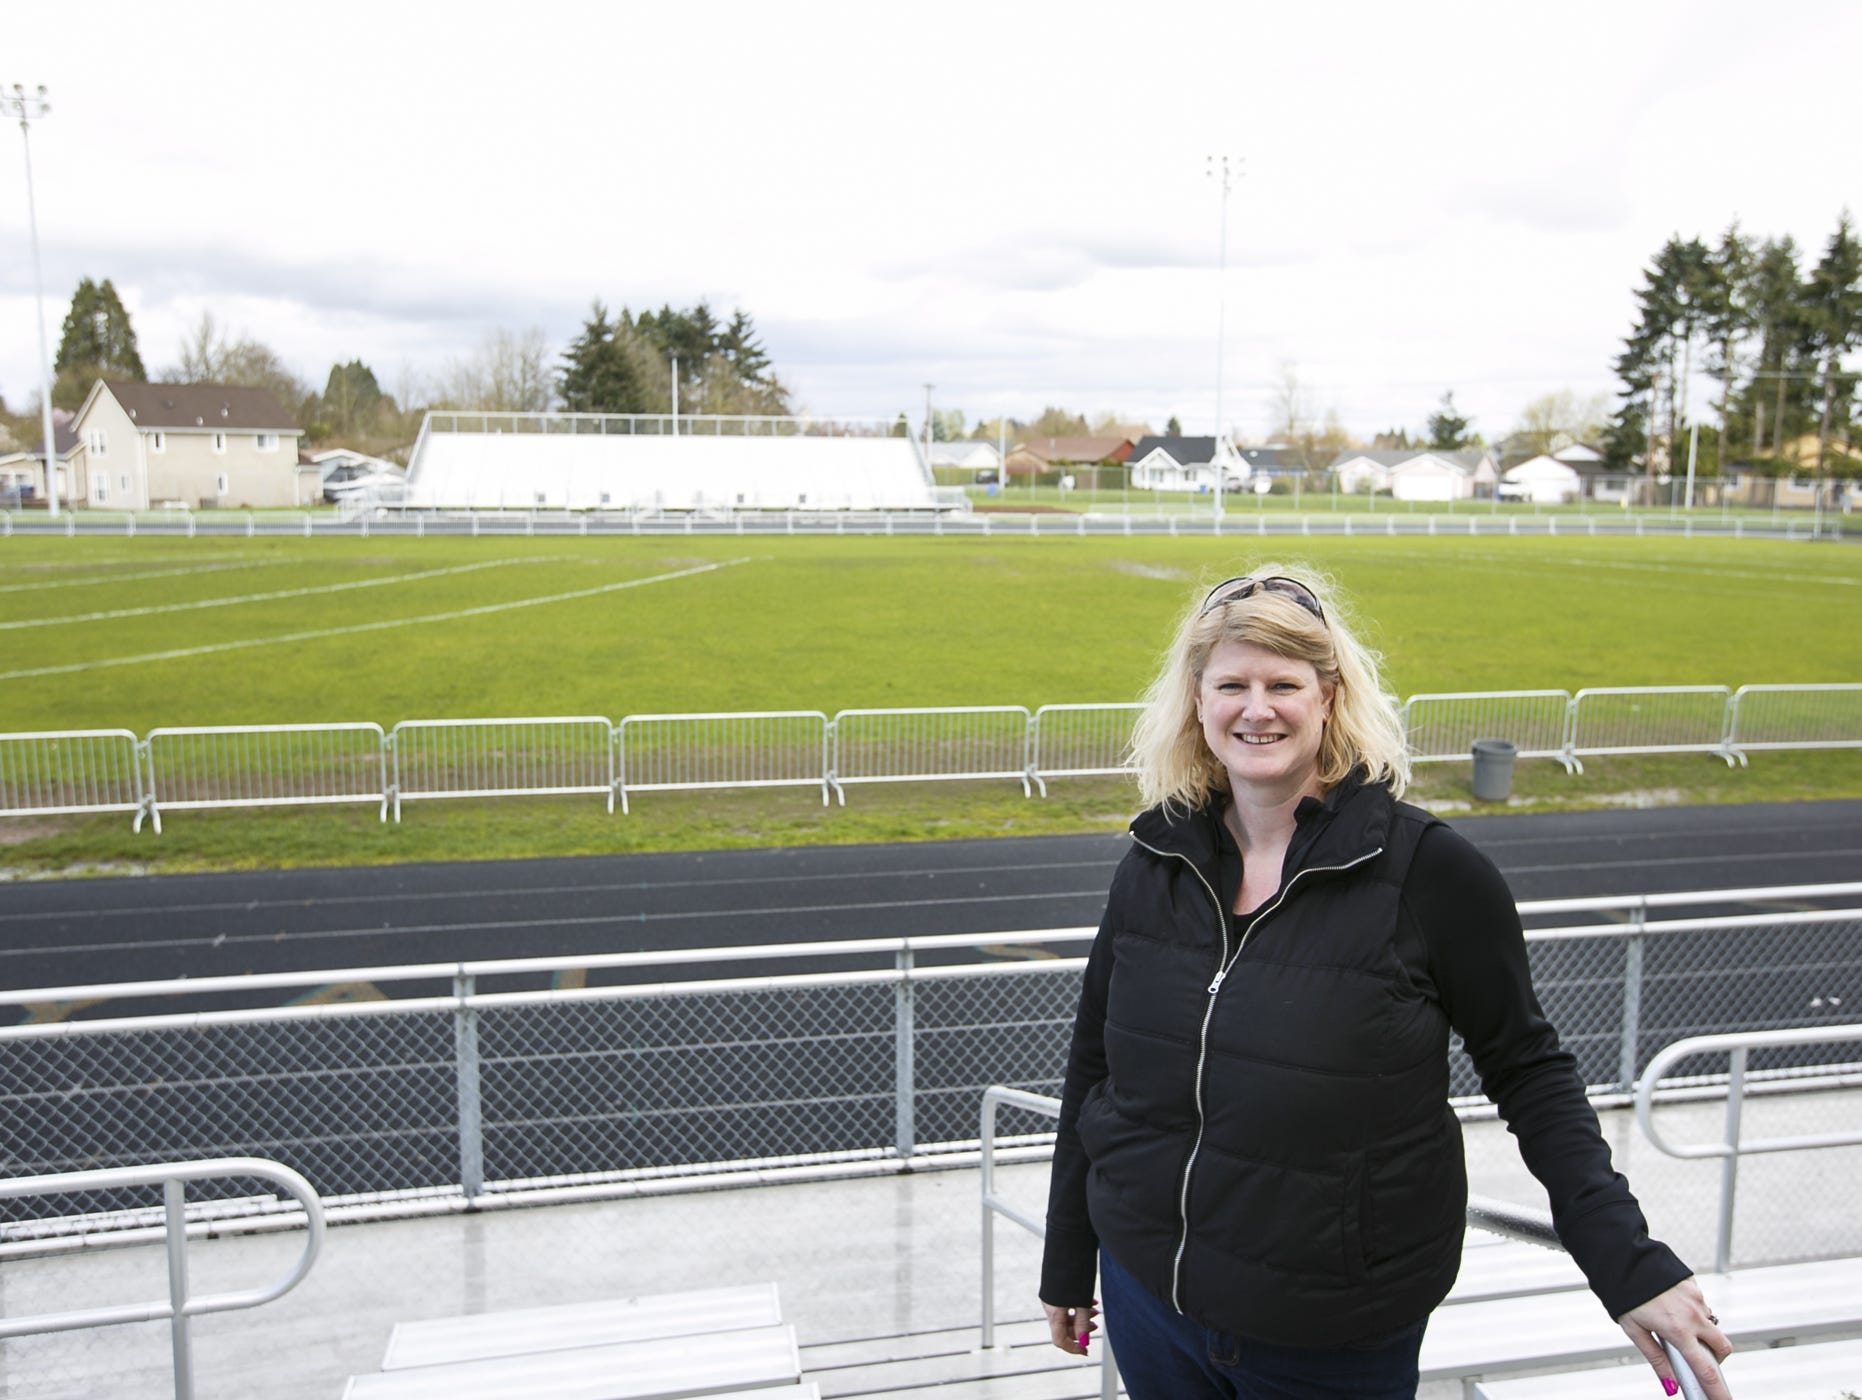 McKay booster club president Becky Bryant stands in front of McKay High School's football field on Friday, March 24, 2017. McKay is the only school in the Salem-Keizer district that still uses a grass football field, but they are schedule to have a new turf surface by this fall after a long fundraising effort.